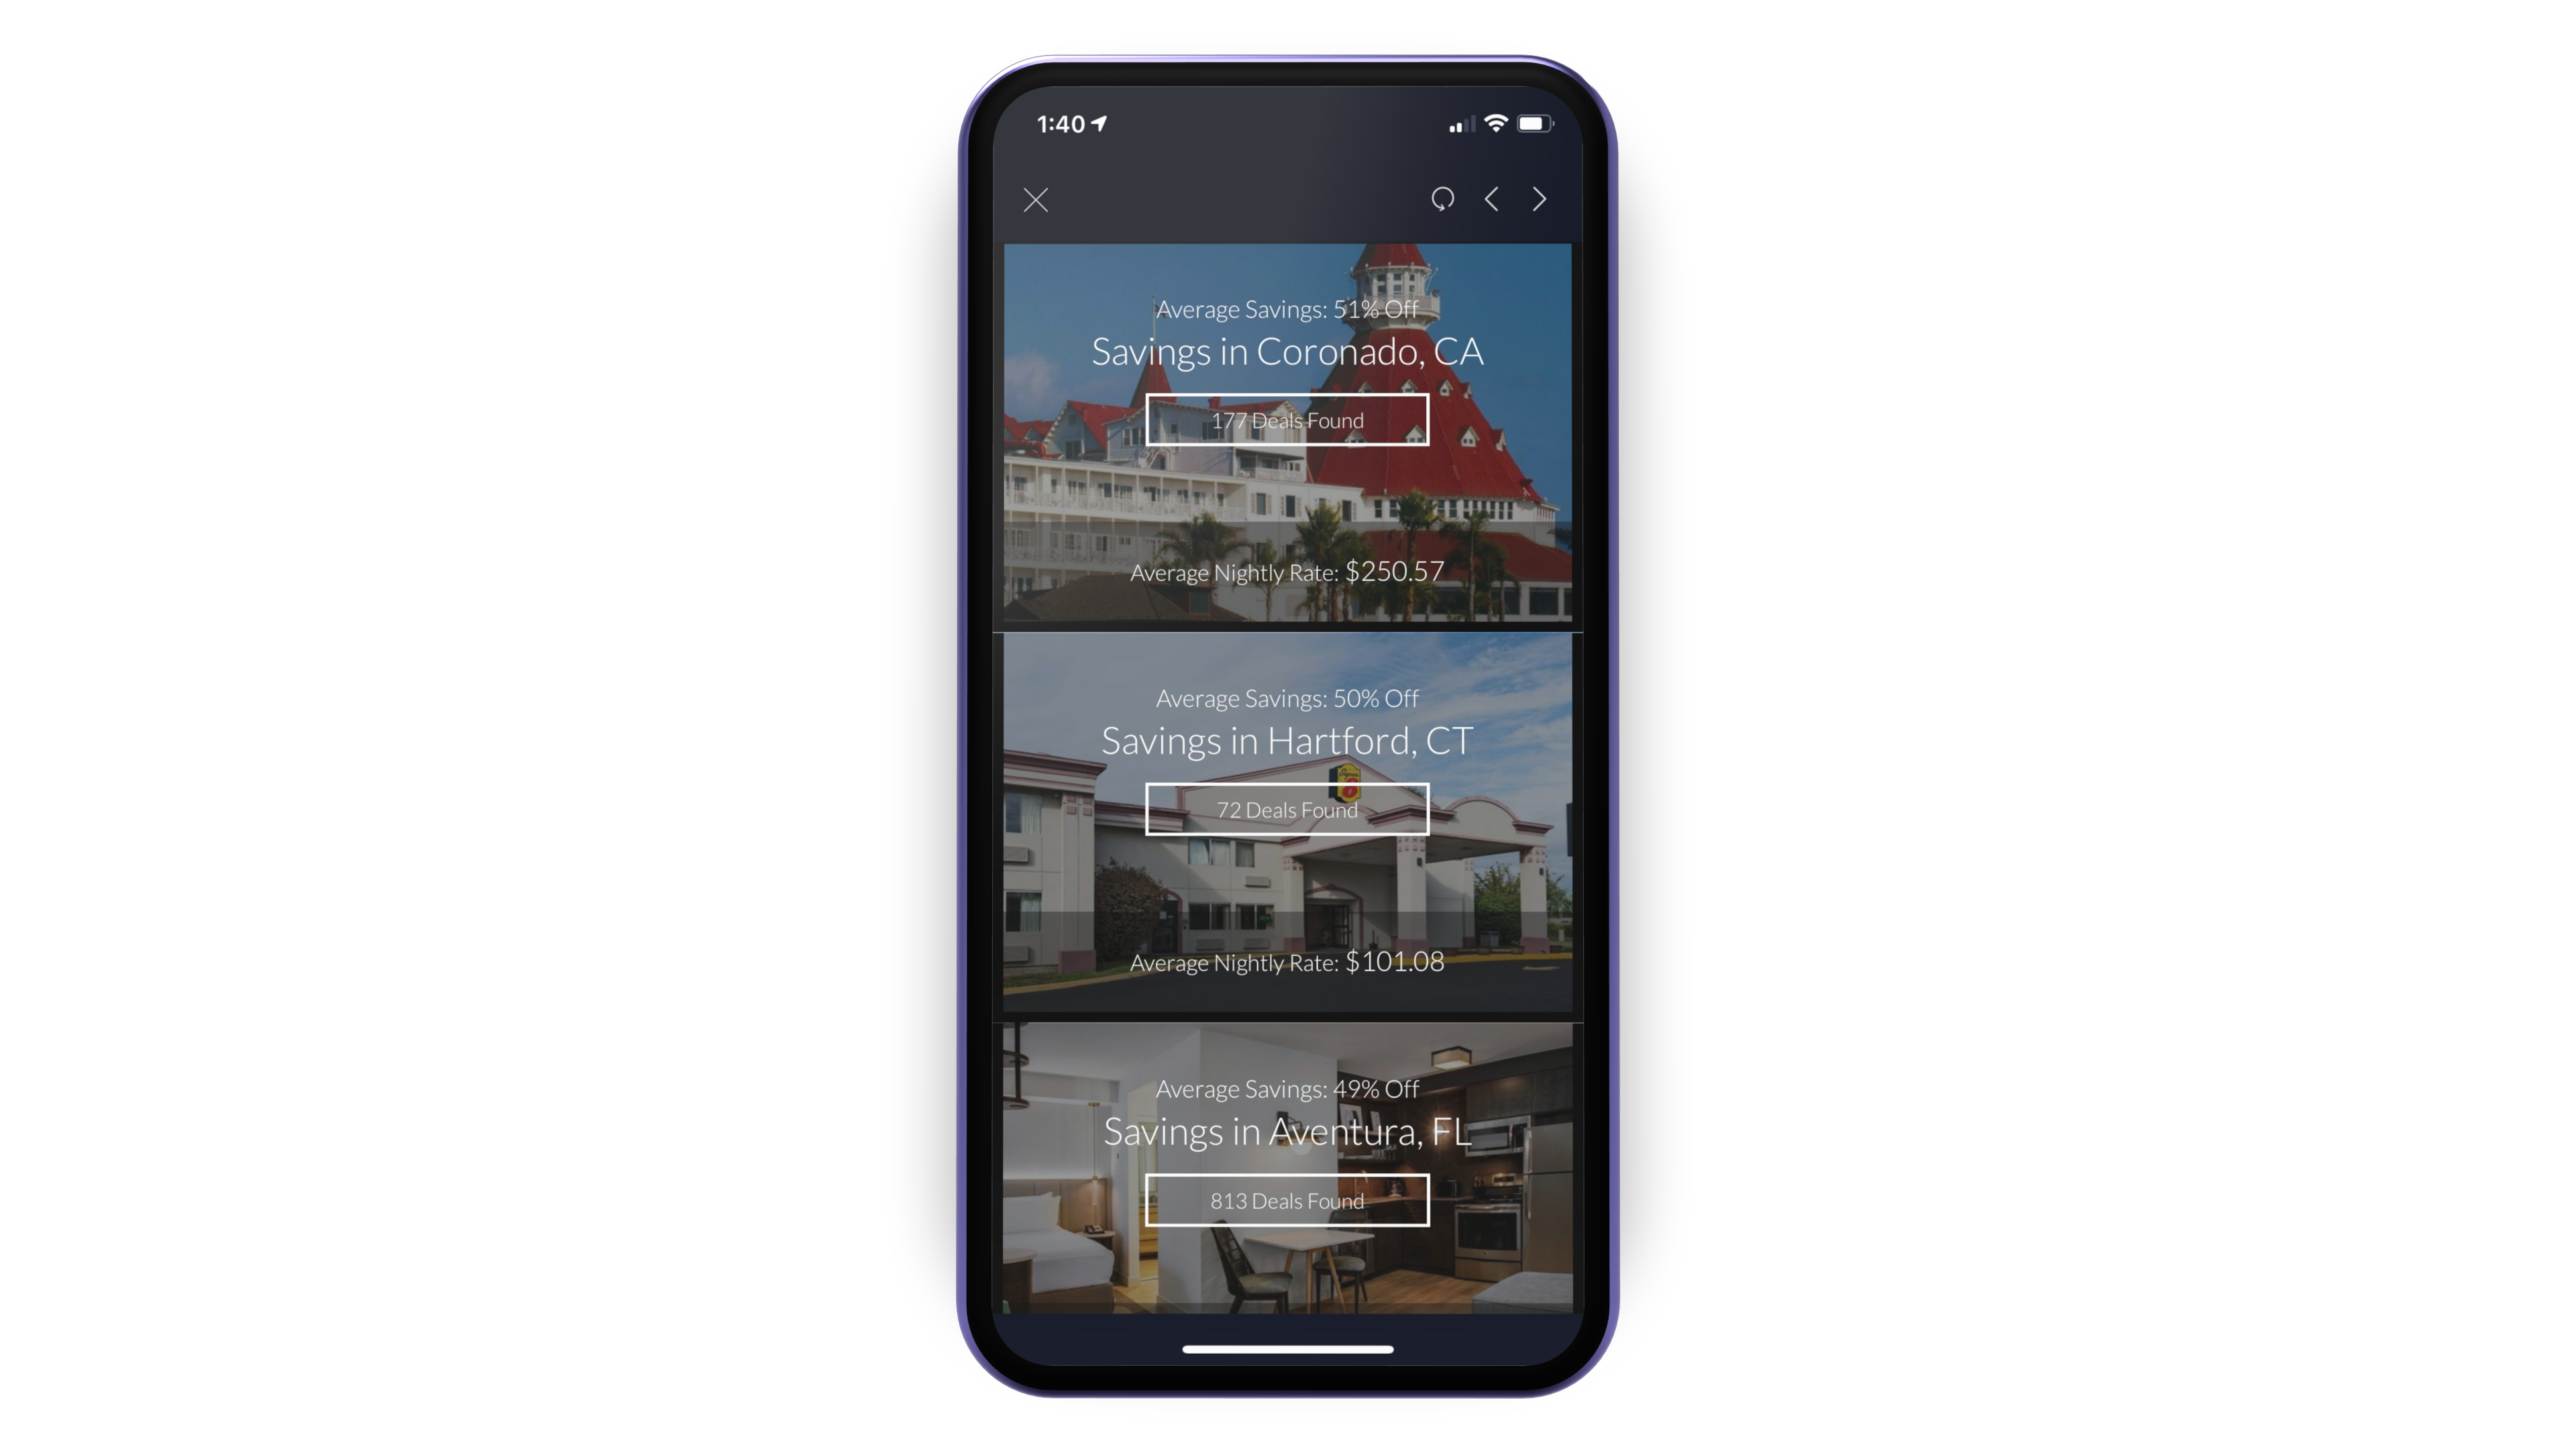 iphone with travel deals